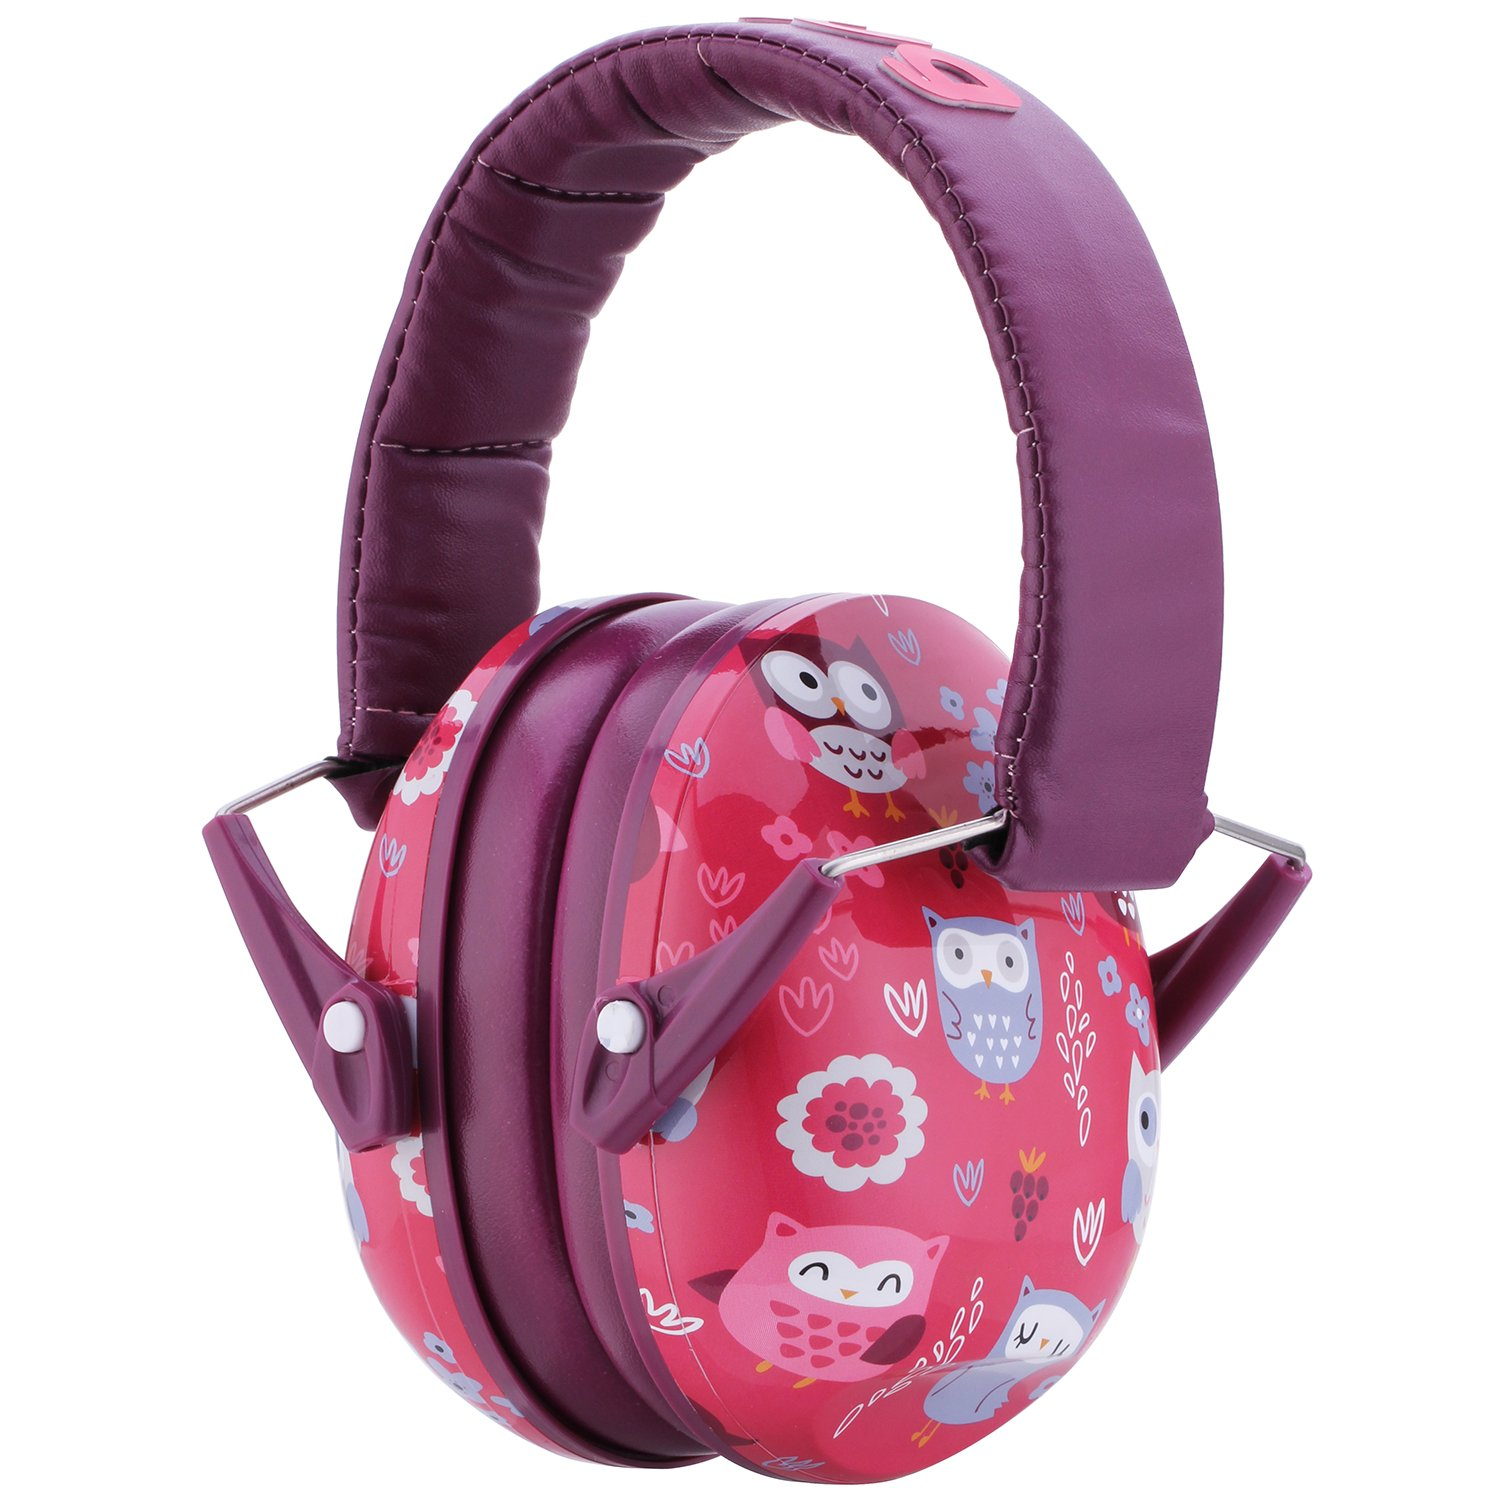 Snug Kids Earmuffs/Hearing Protectors – Adjustable Headband Ear Defenders for Children and Adults (Owls) by Snug (Image #1)